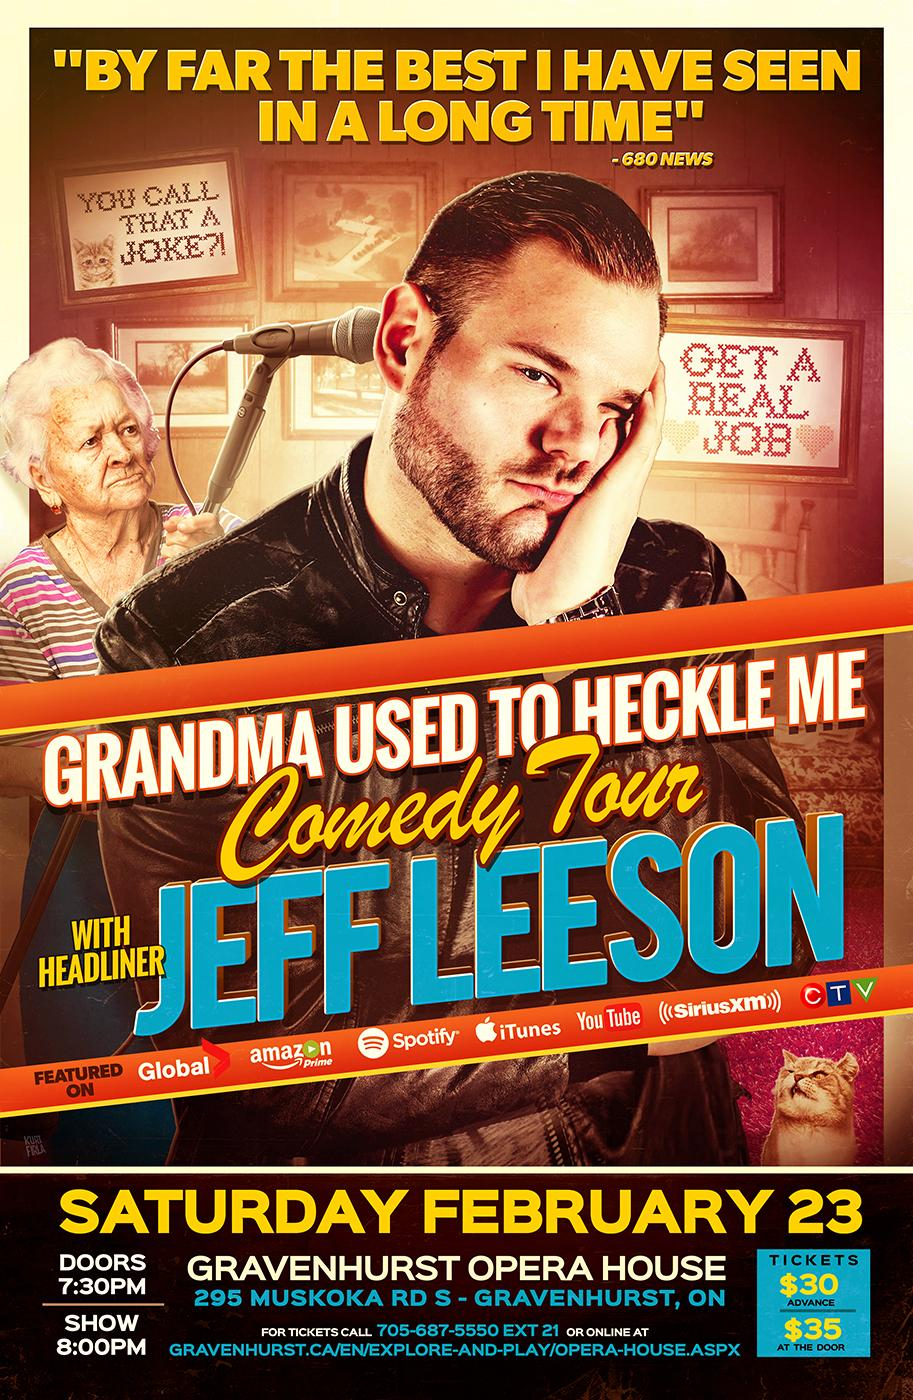 Promotional poster for upcoming Jeff Leeson comedy tour on February 23, 2019